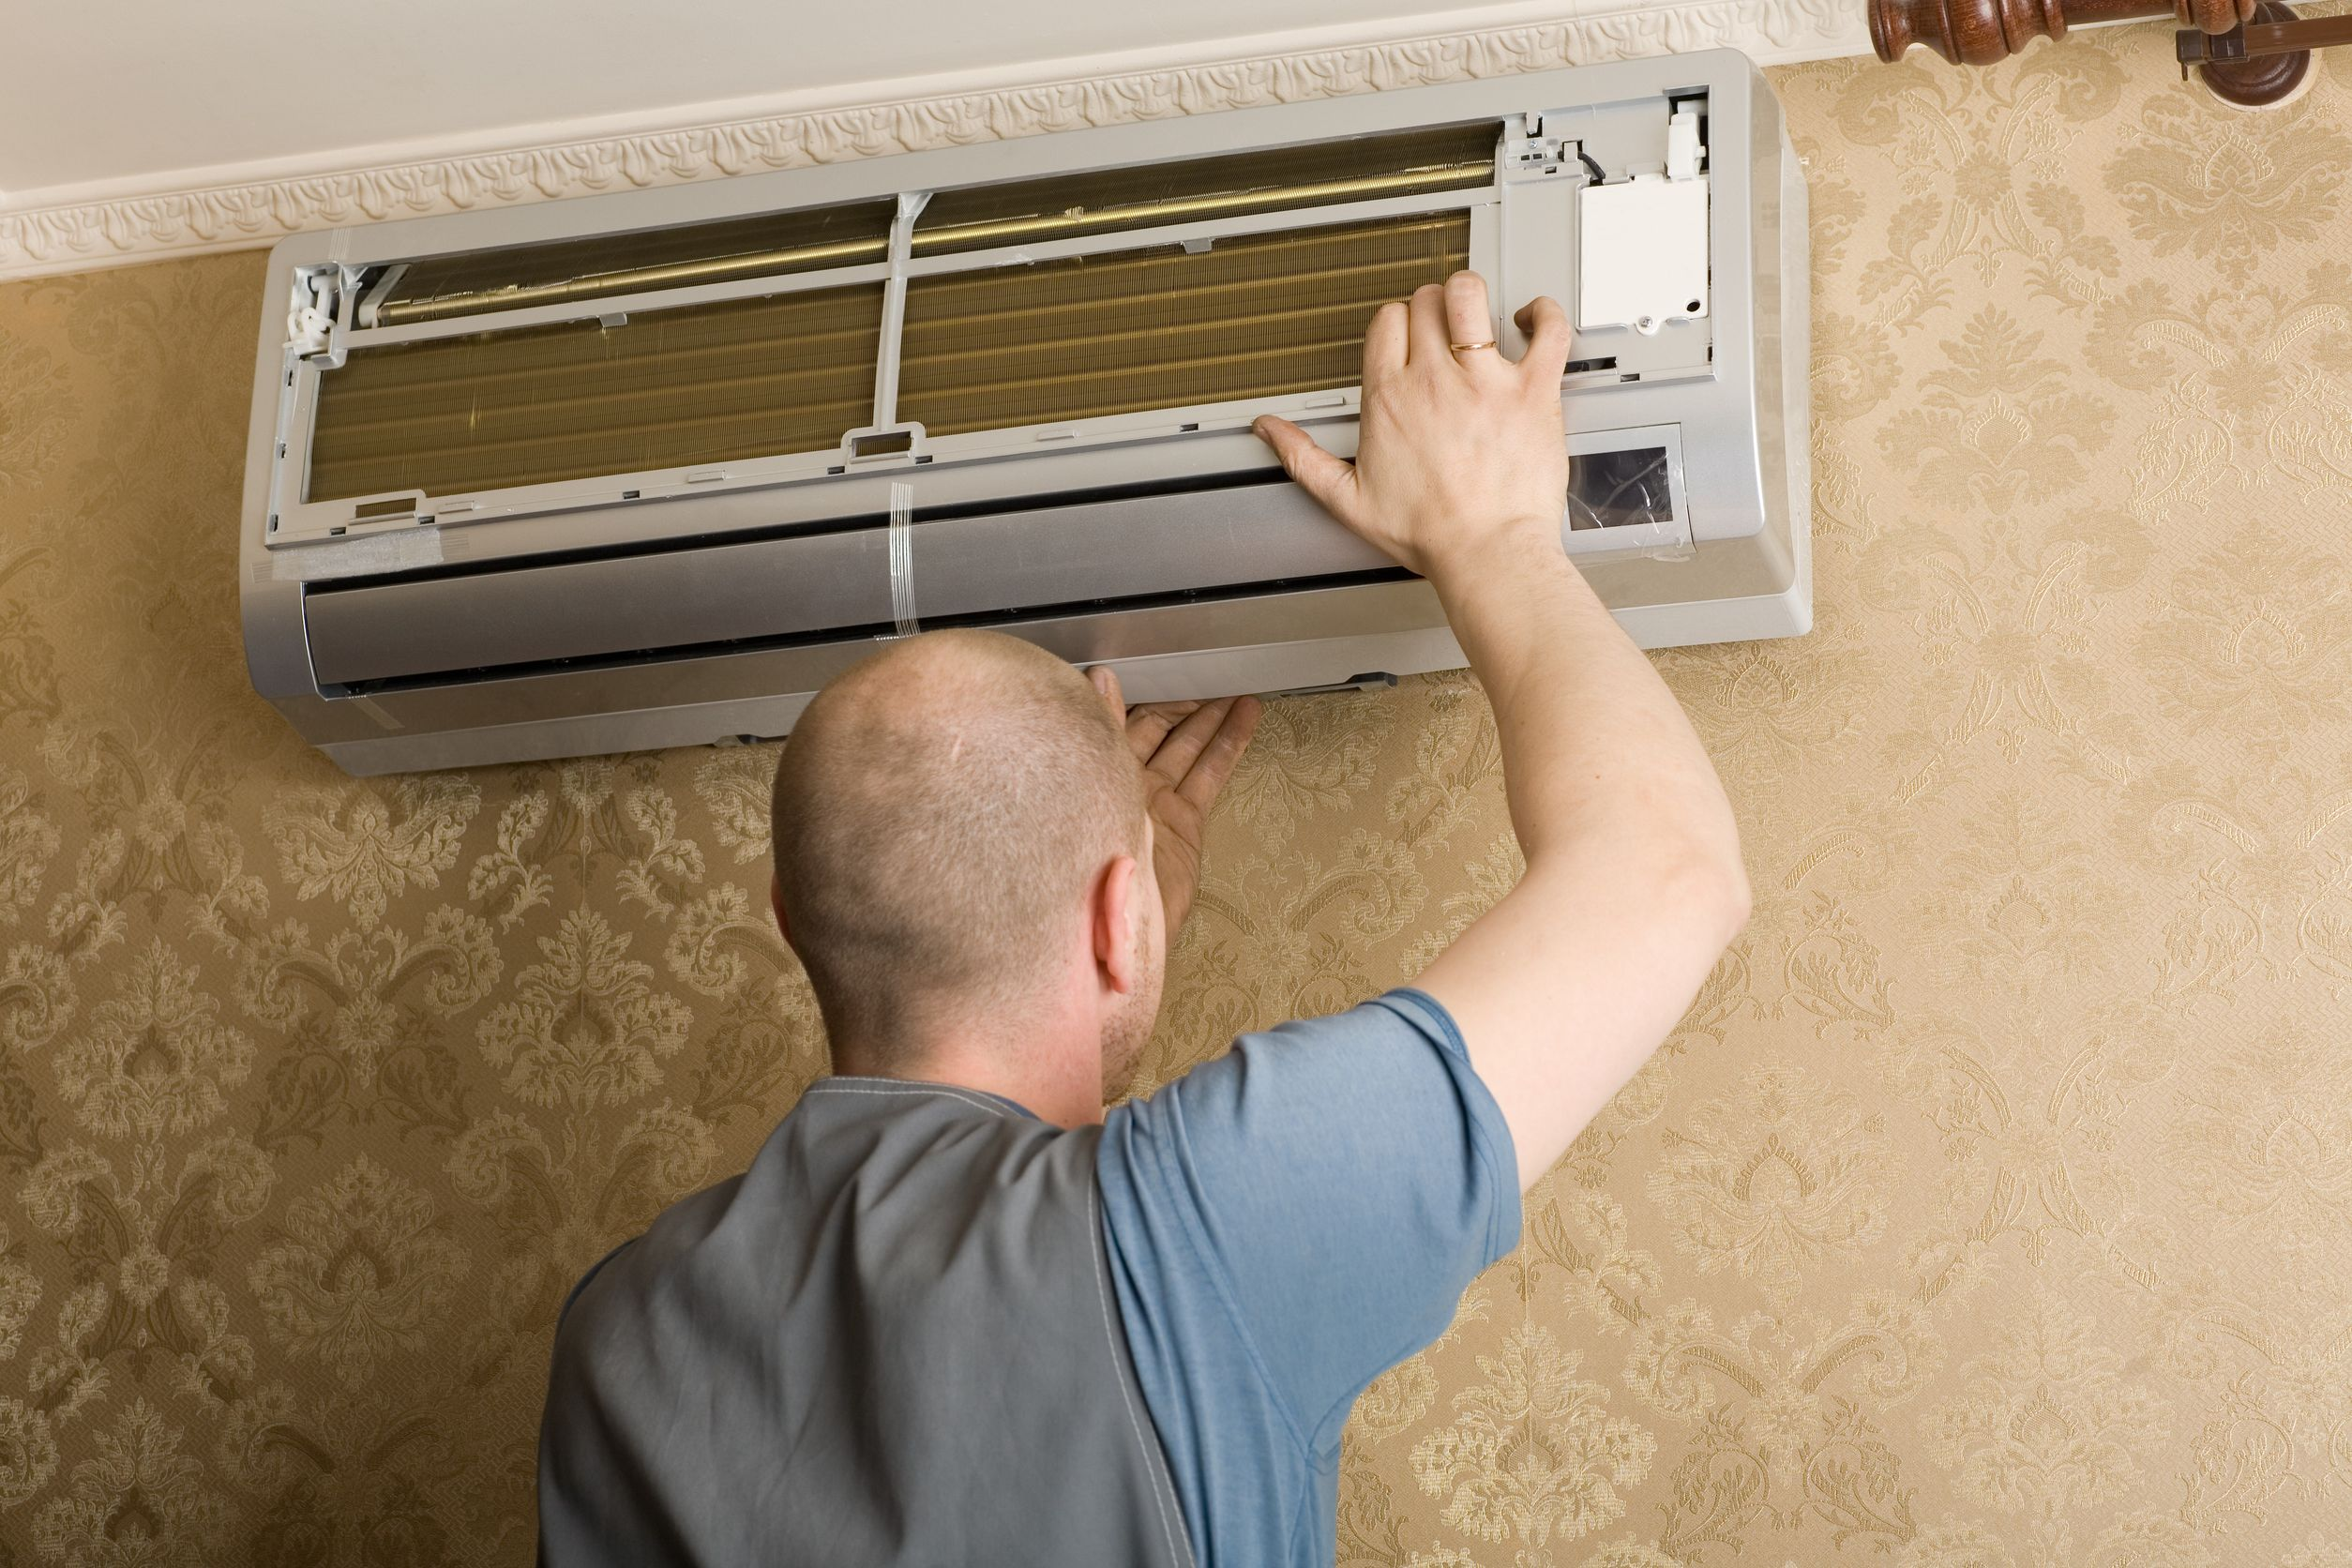 ... air conditioning systems to ensure proper functioning and energy